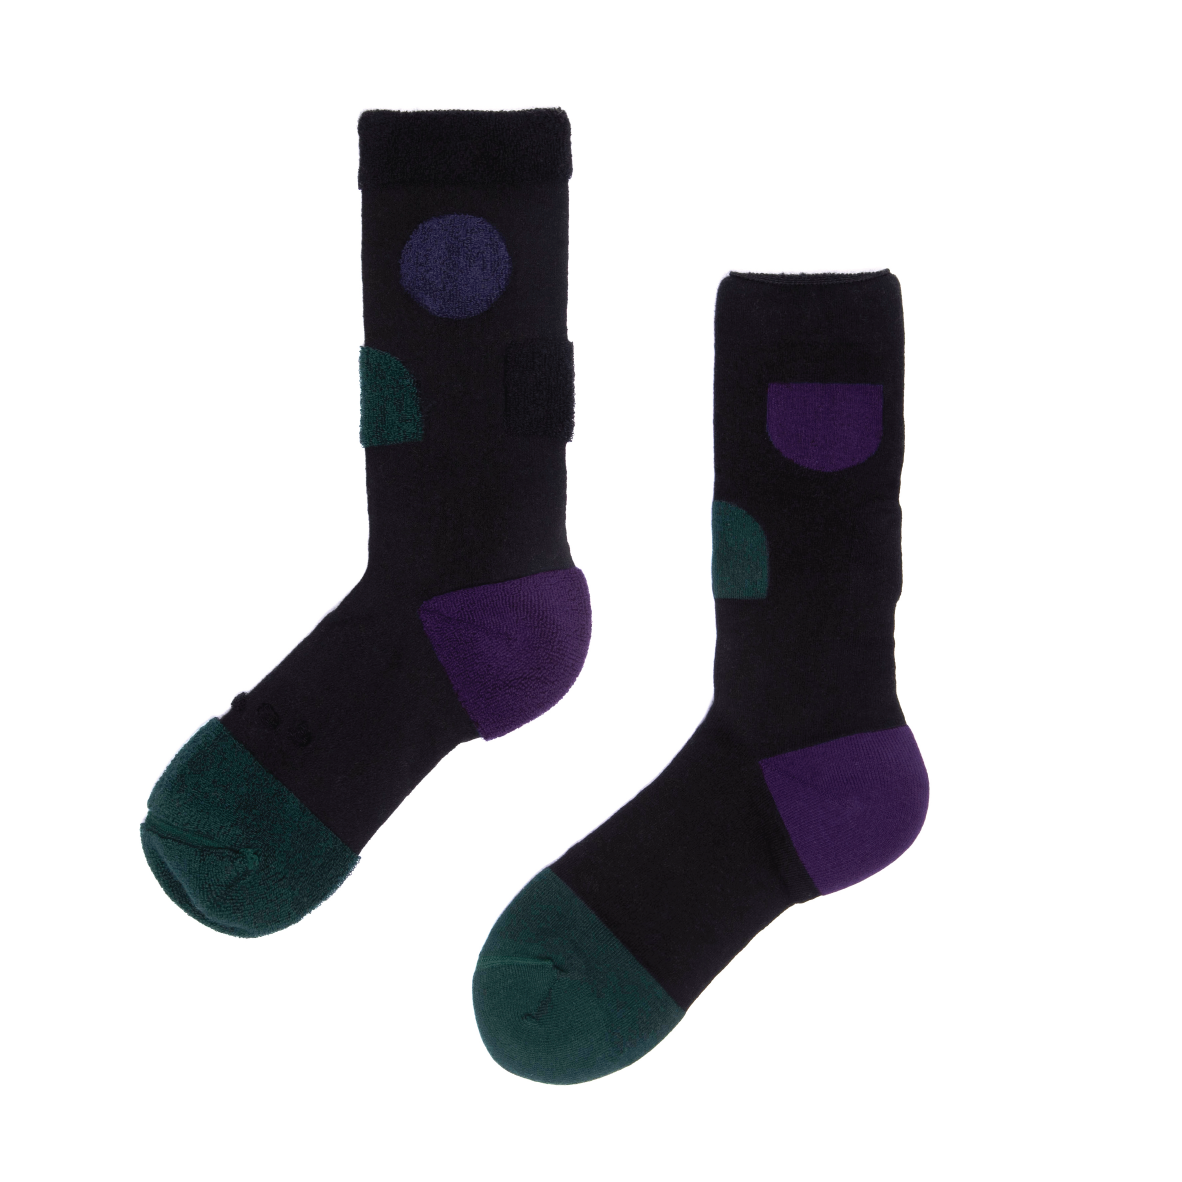 MY INNER BEAUTY: JIWA | Black & Bistro Green | Reversible Patterned Socks